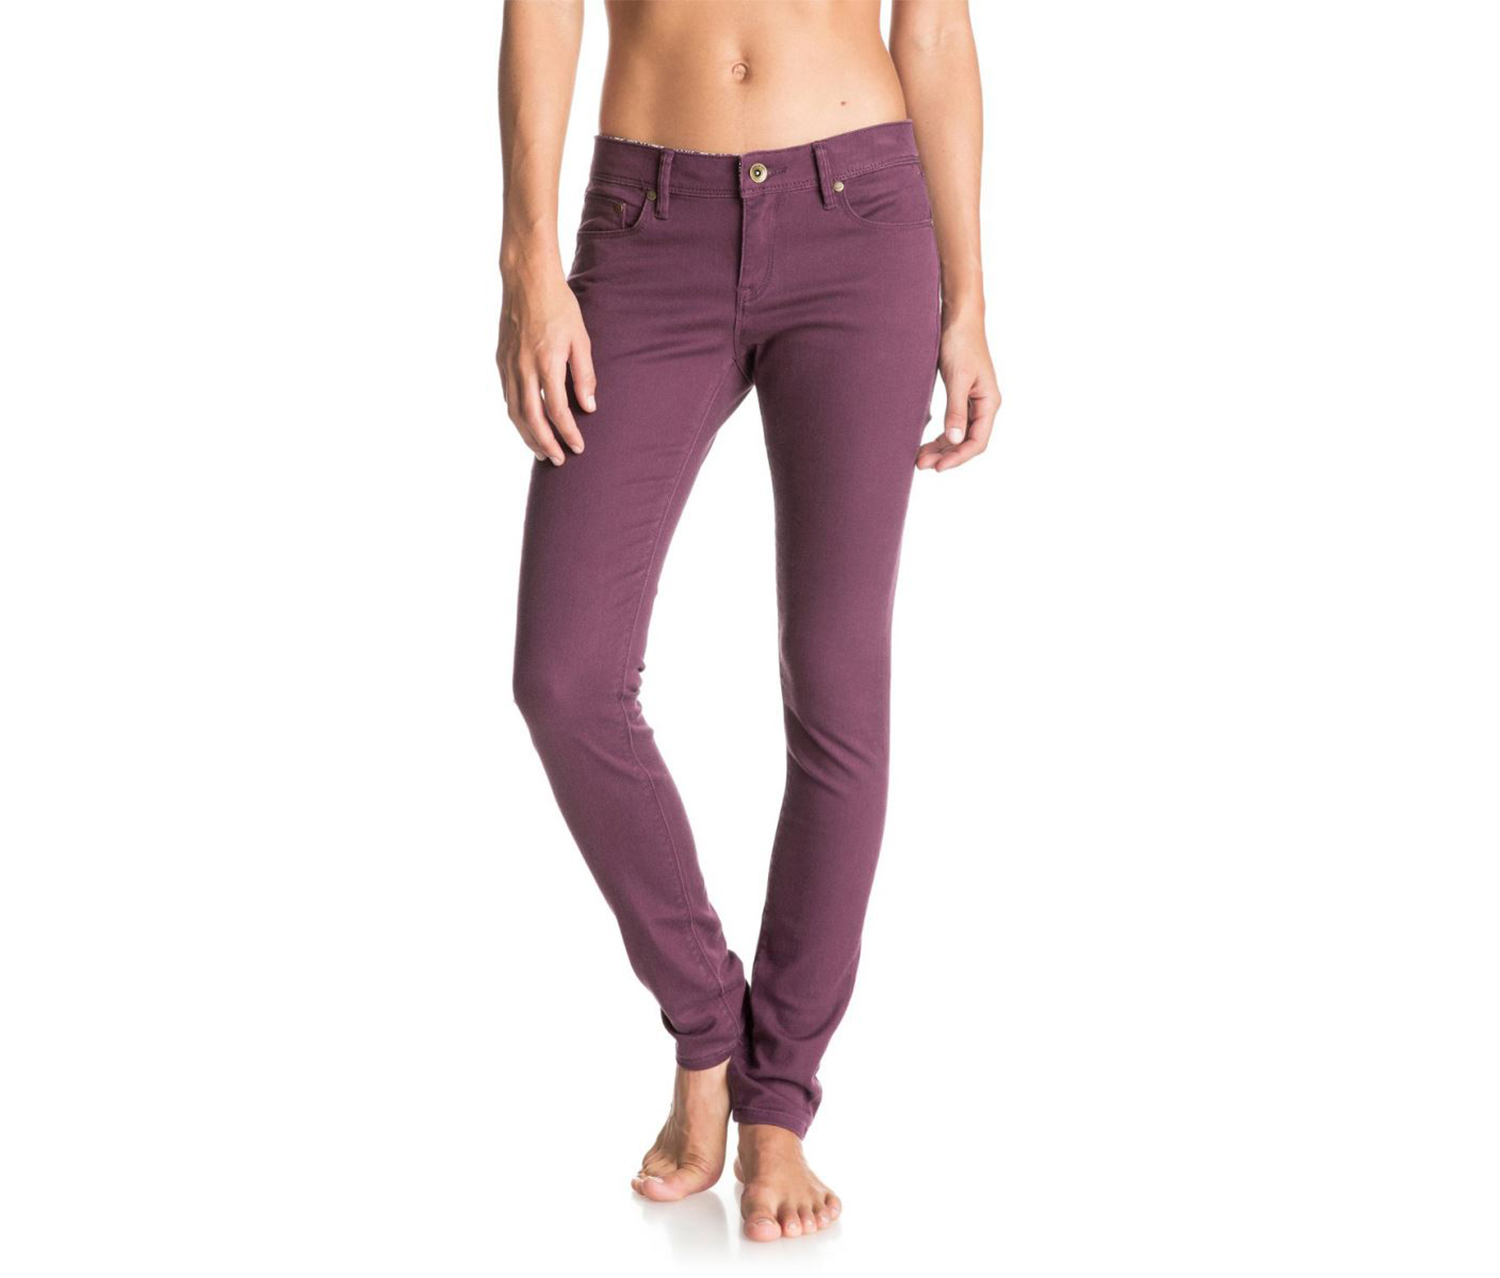 Roxy Women's Casual Suntrippers Pants, Purple